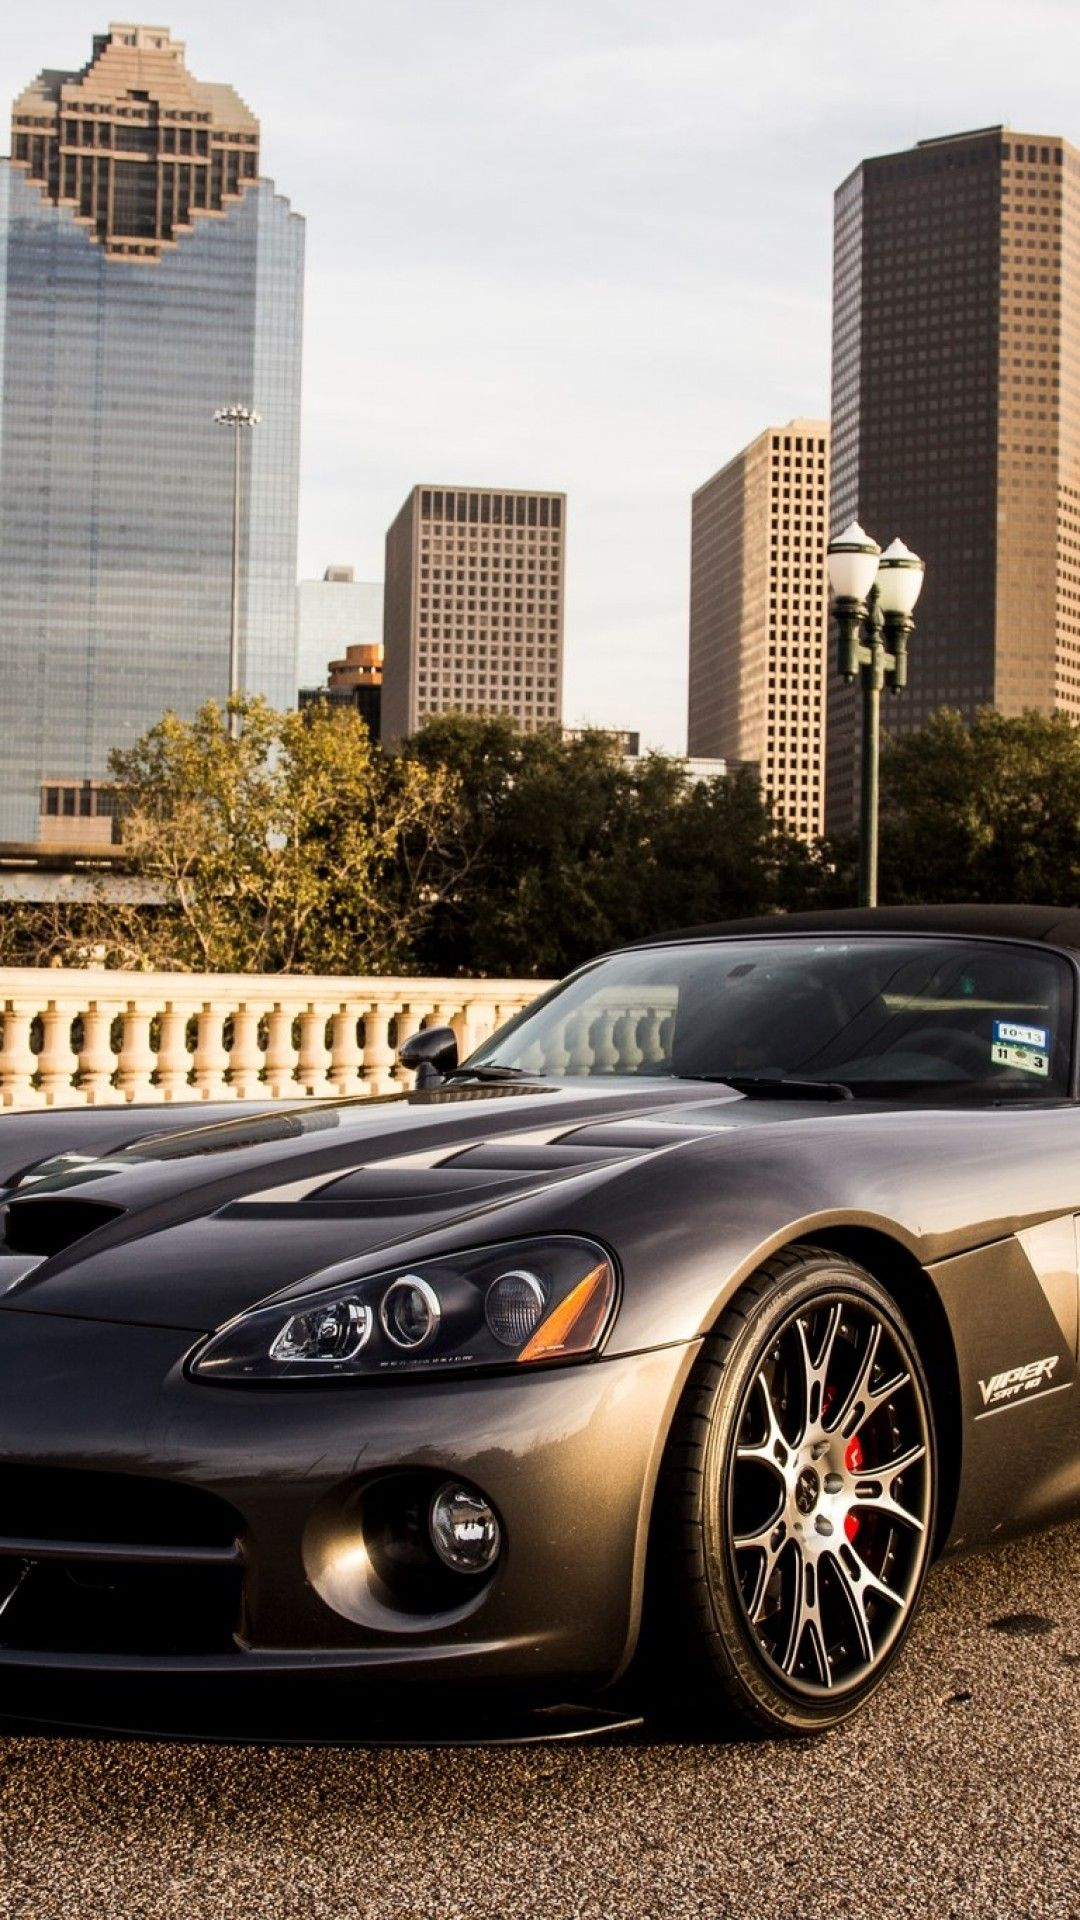 1080x1920 Download 1080x1920 Dodge Viper Convertible, Grey, Front View, Sport ...